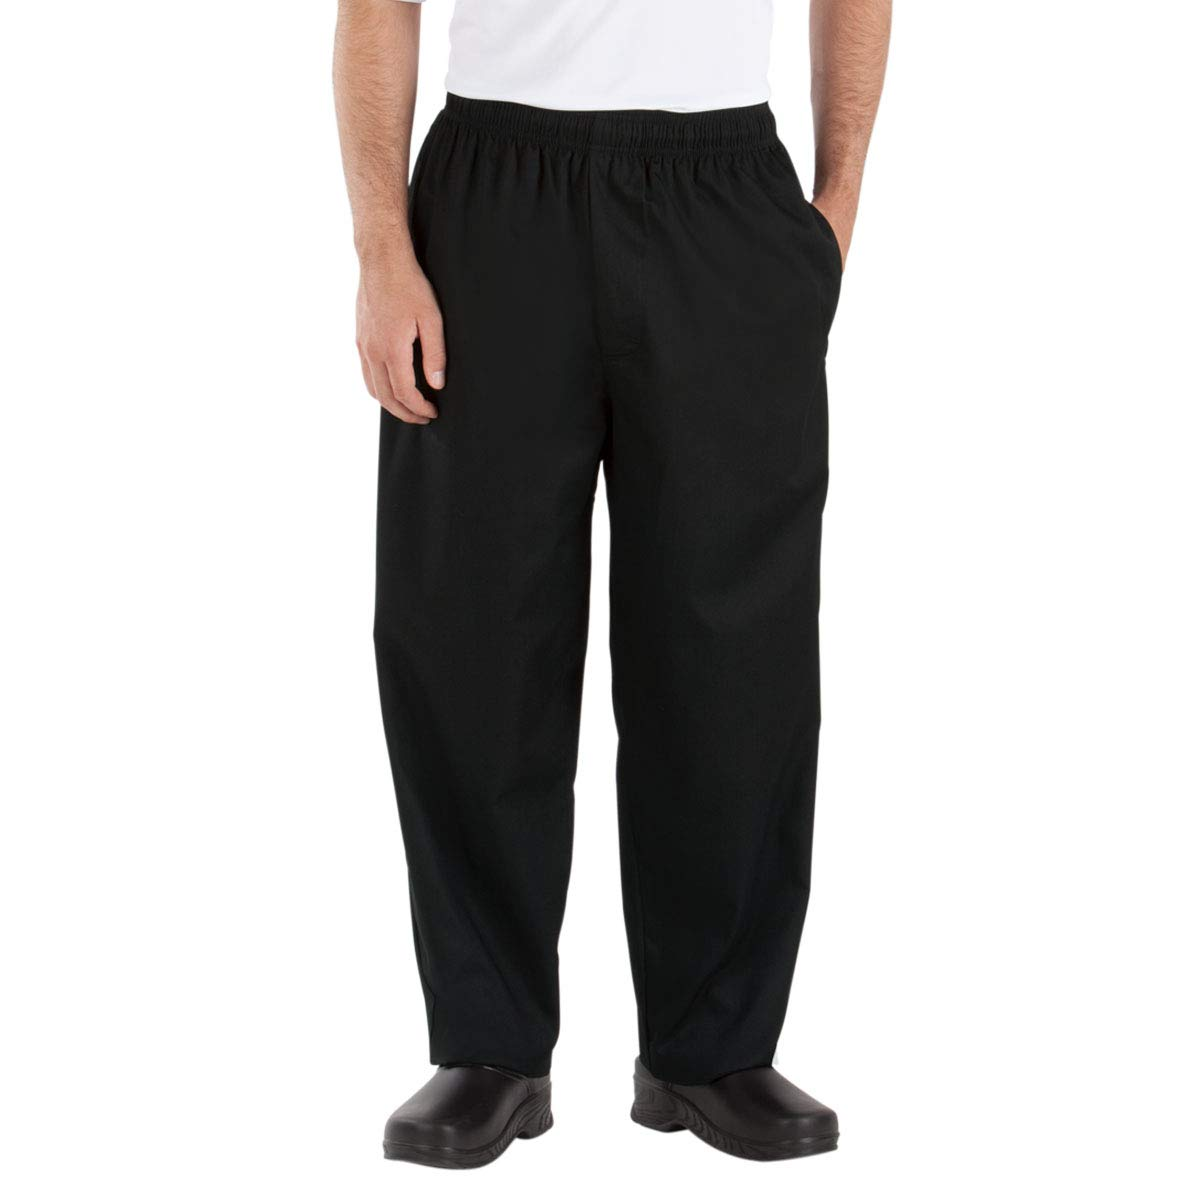 Happy Chef Poly Cotton Classic Baggy Pants, XX-Large, Black by Happy Chef